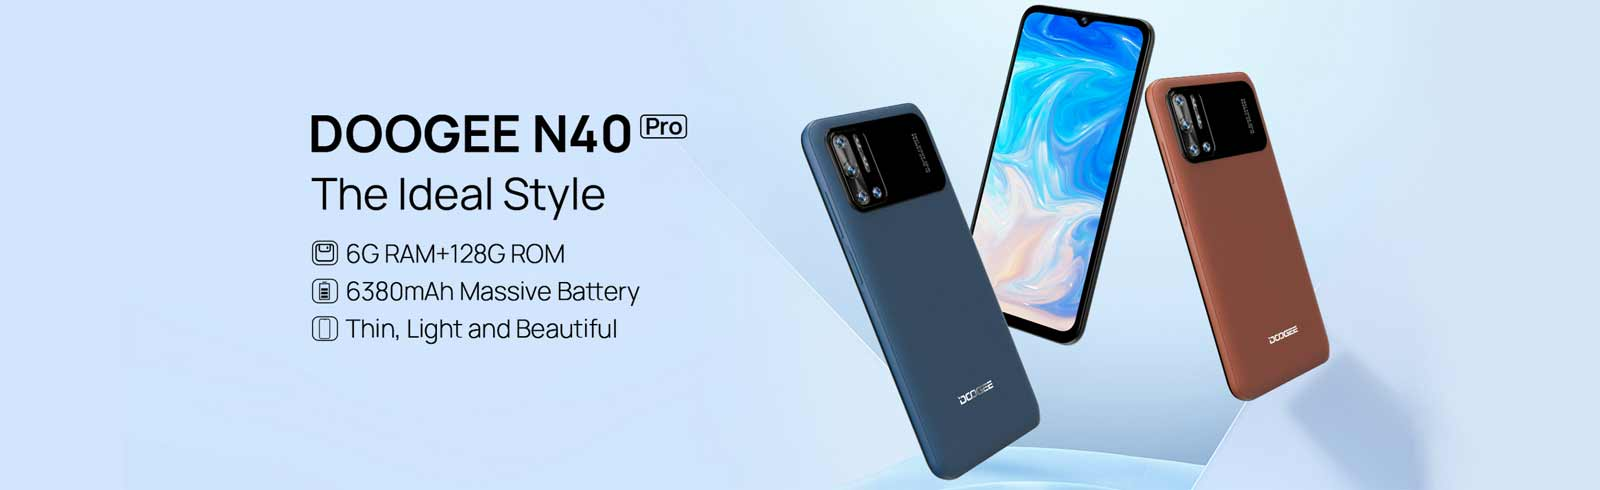 The Doogee N40 Pro with a 6380 mAh battery goes official